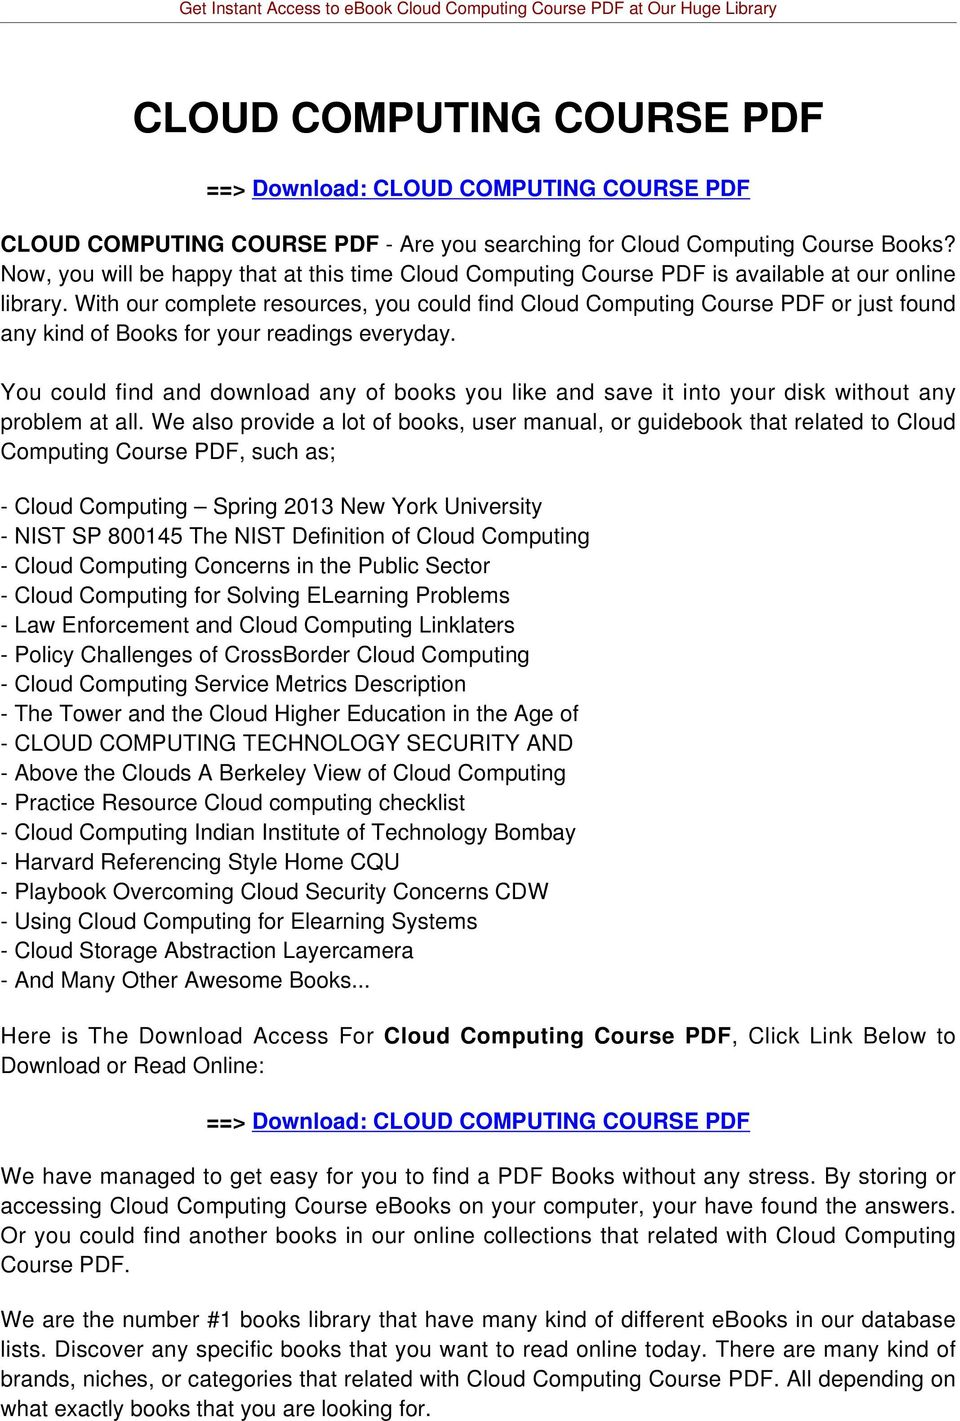 With our complete resources, you could find Cloud Computing Course PDF or just found any kind of Books for your readings everyday.